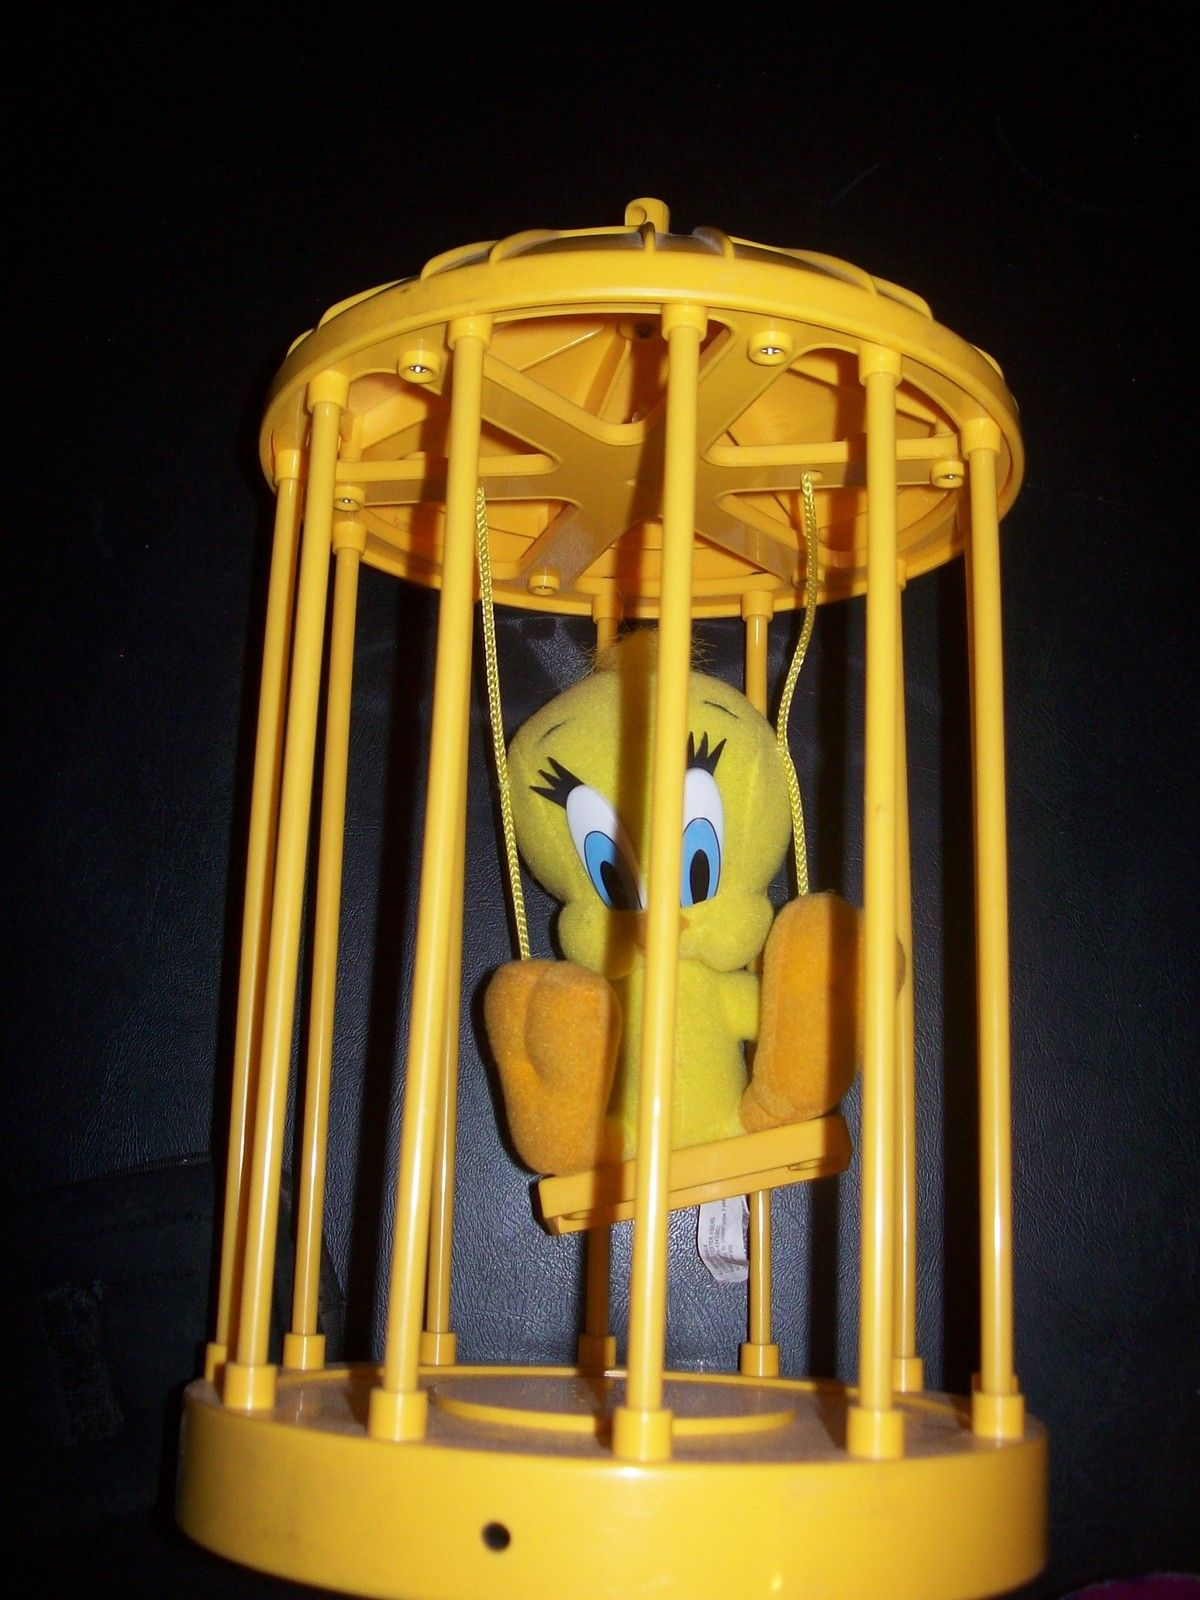 Talking Tweety Bird In Cage By Warner Brothers